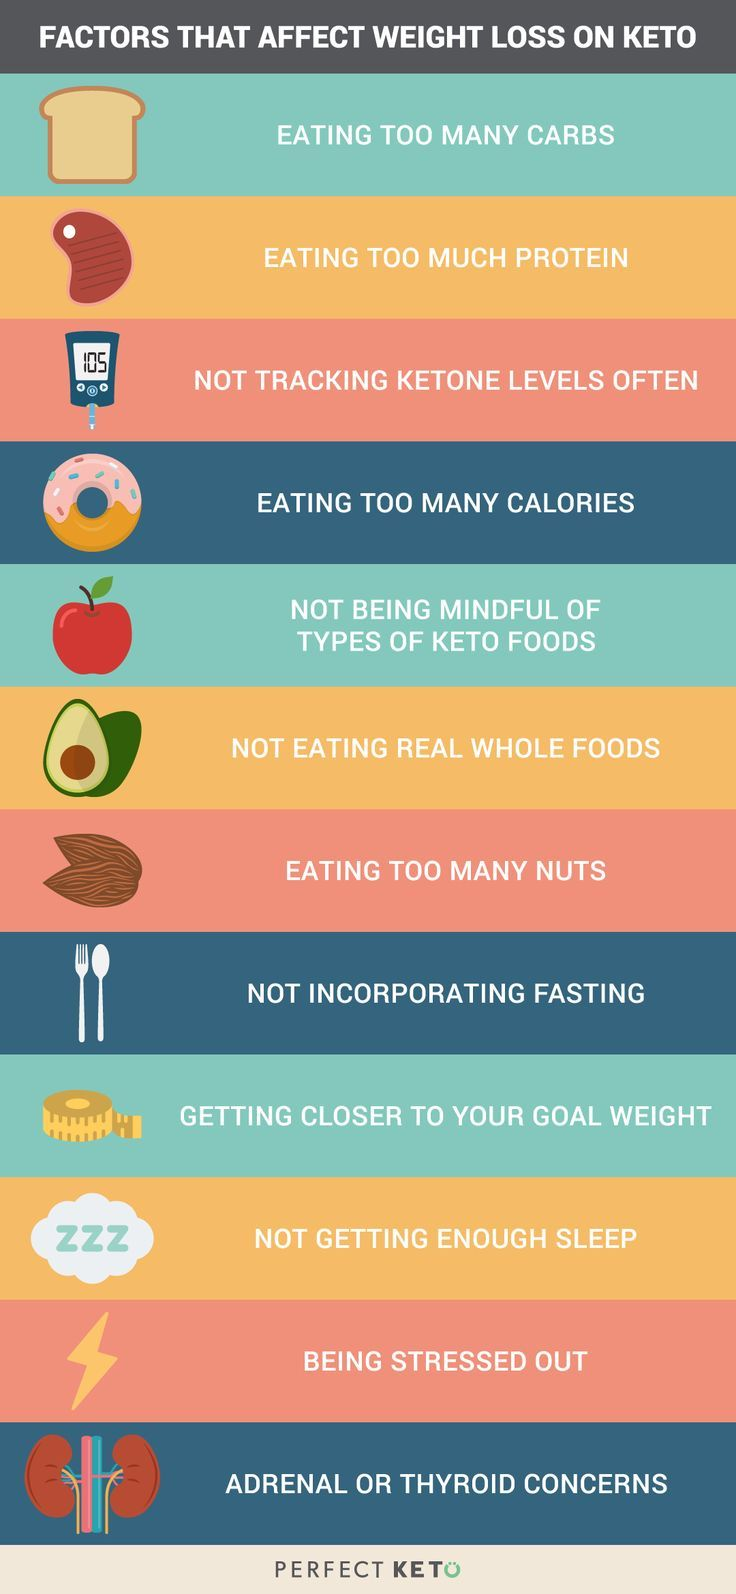 when does weight loss stop on keto diet